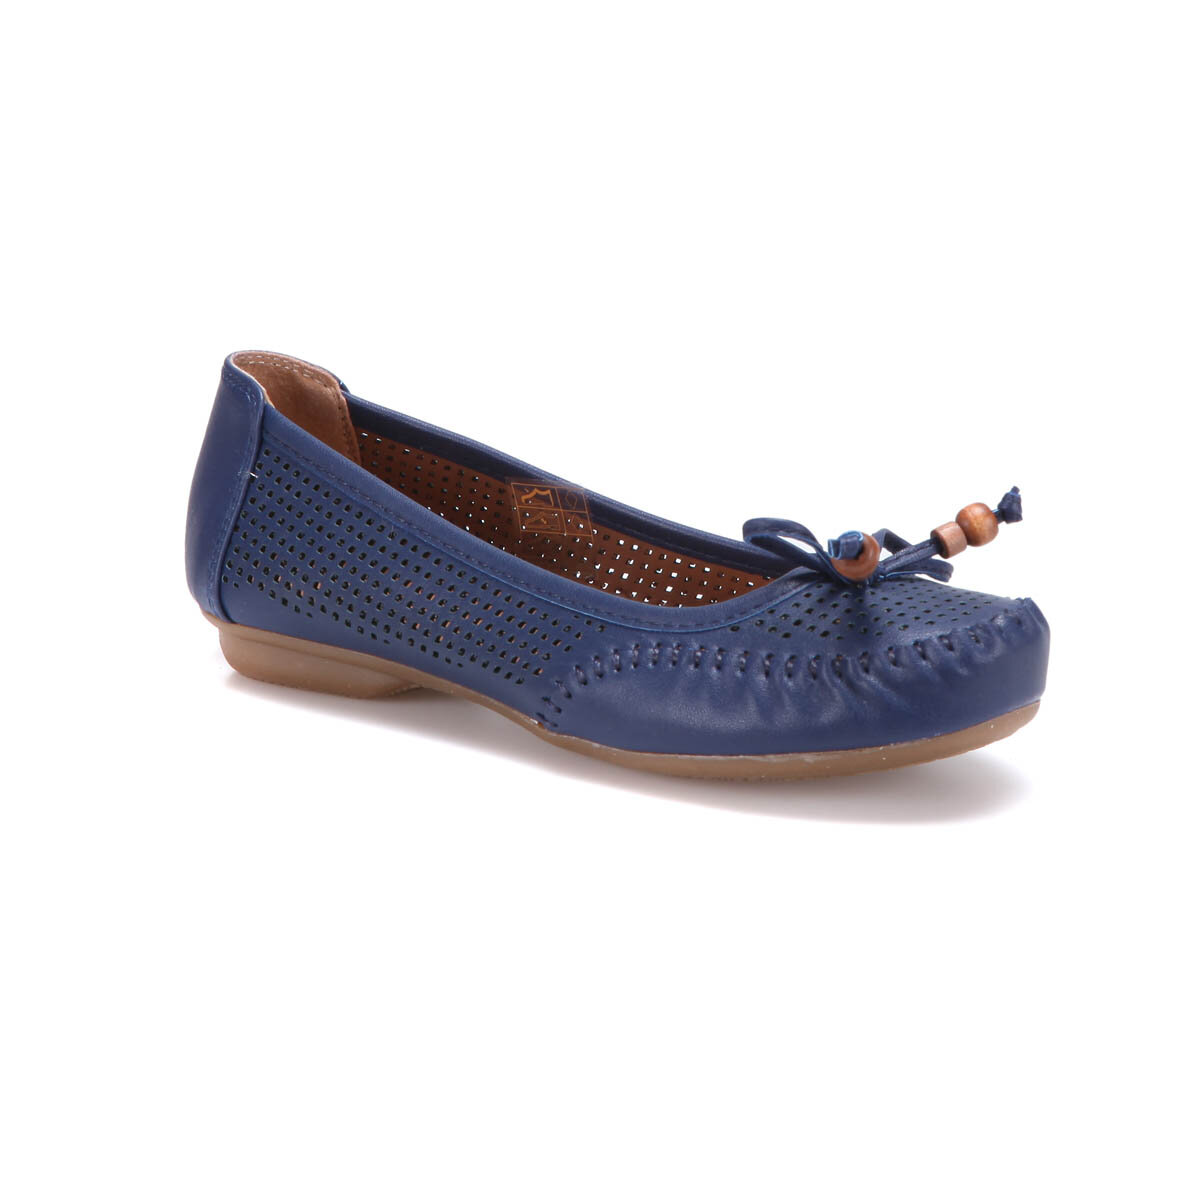 FLO 71. 155545.Z Navy Blue Women Basic Comfort Polaris